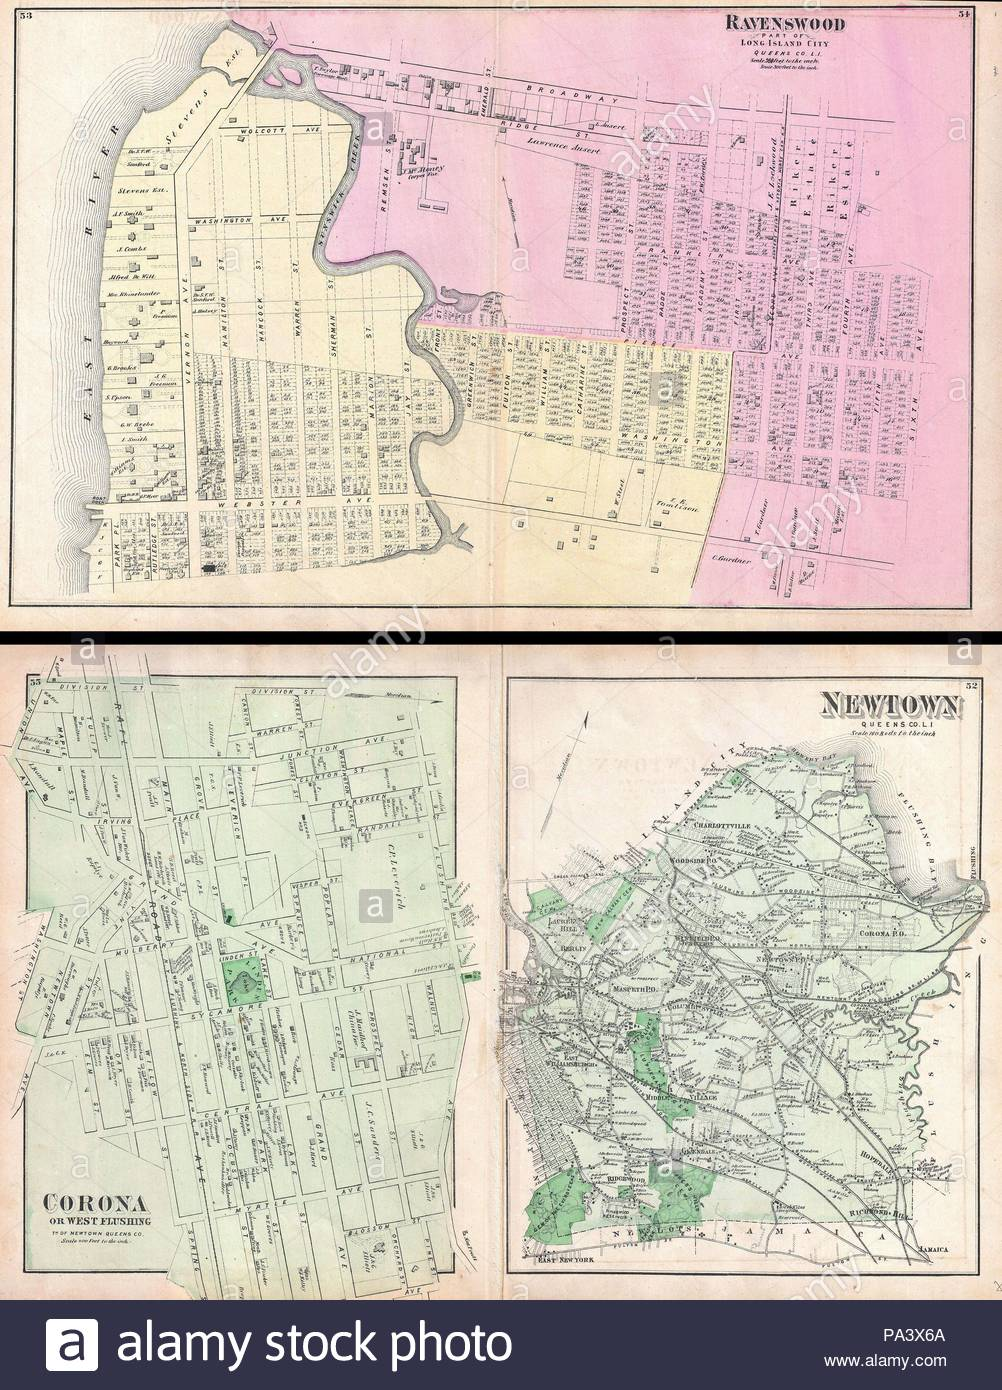 1873 Beers Map Of Ravenswood Long Island City Queens New York